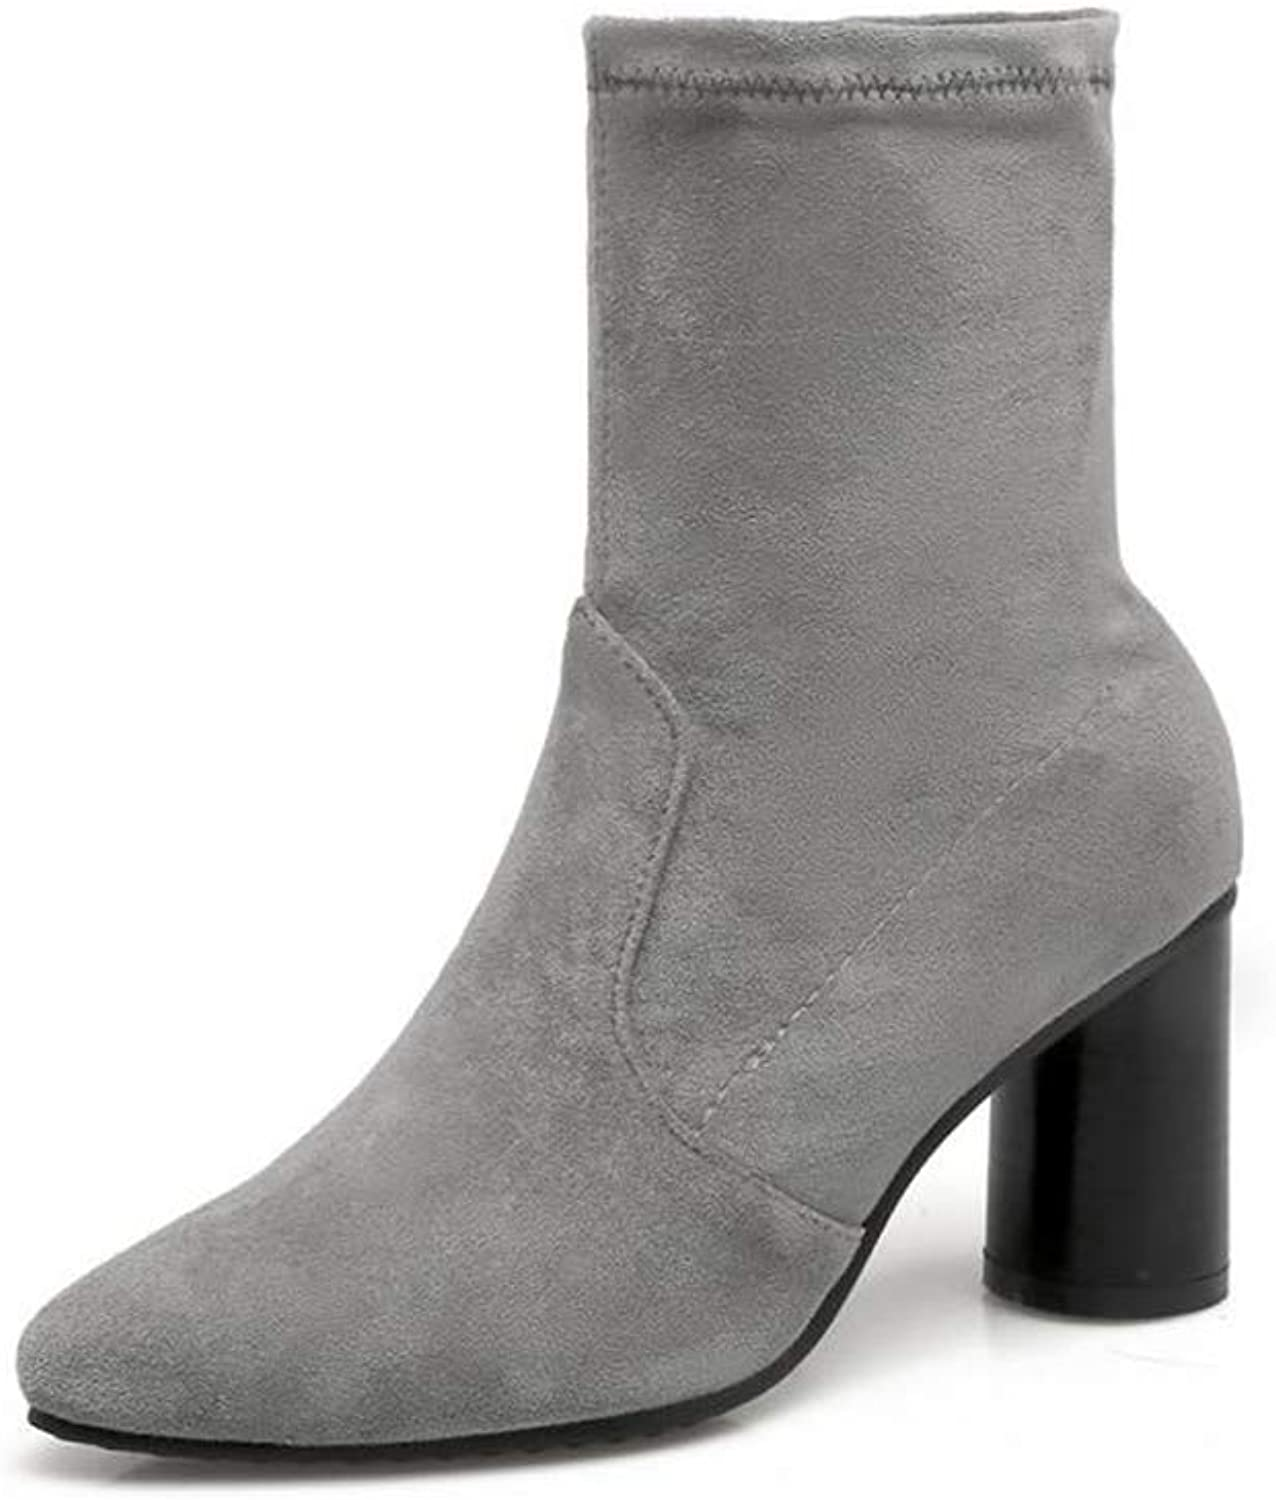 Fancyww Women's Suede Pointed Booties